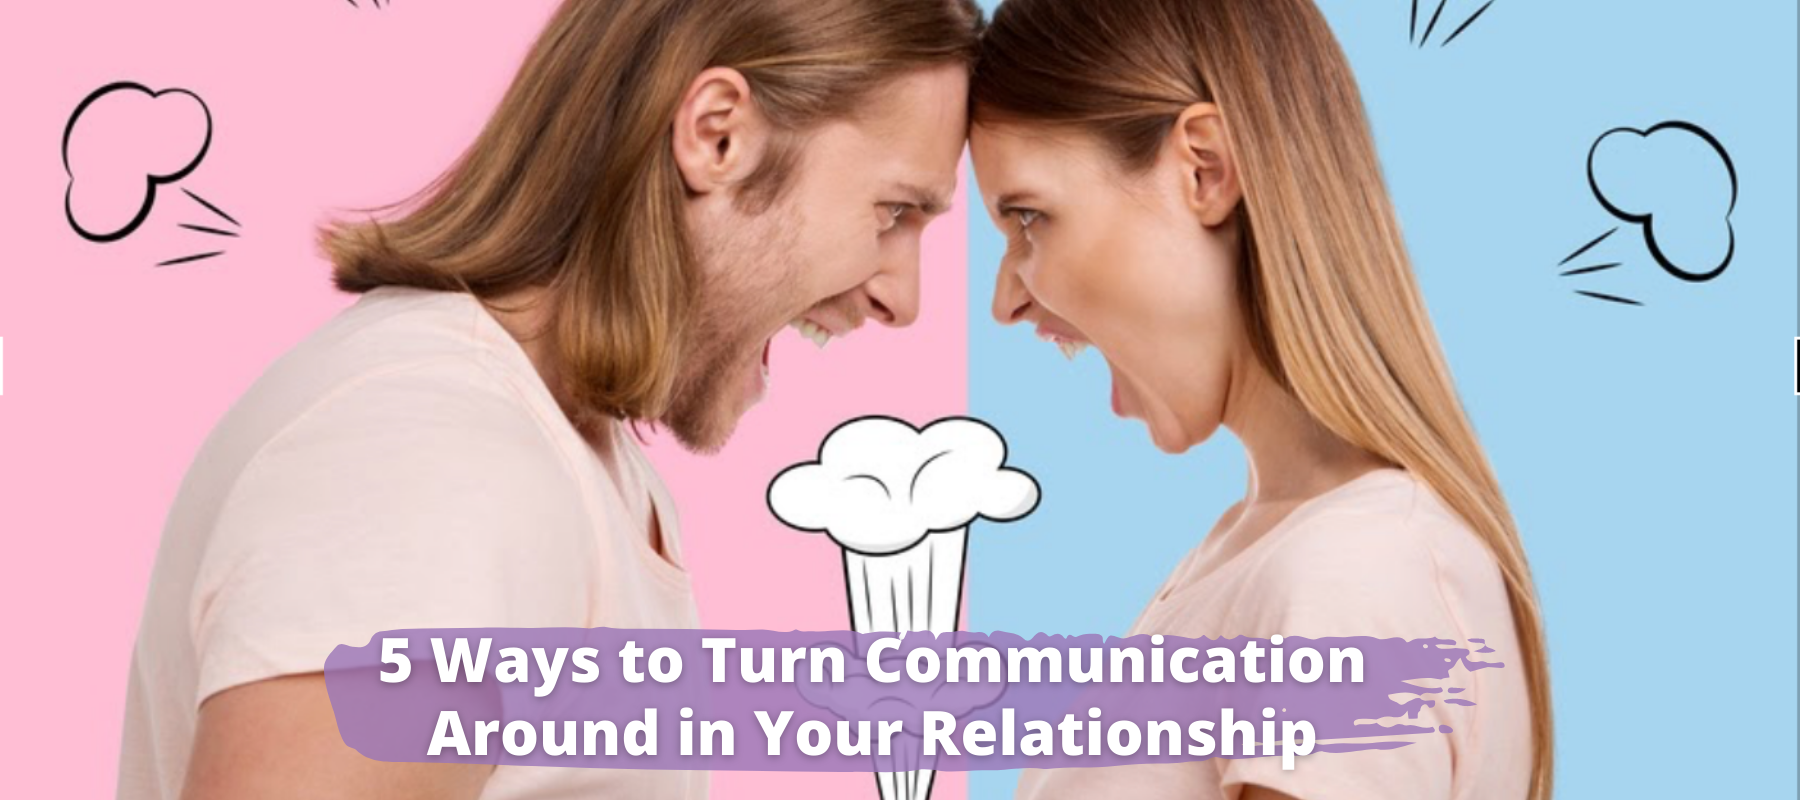 5-ways-to-turn-communication-around-in-your-relationship